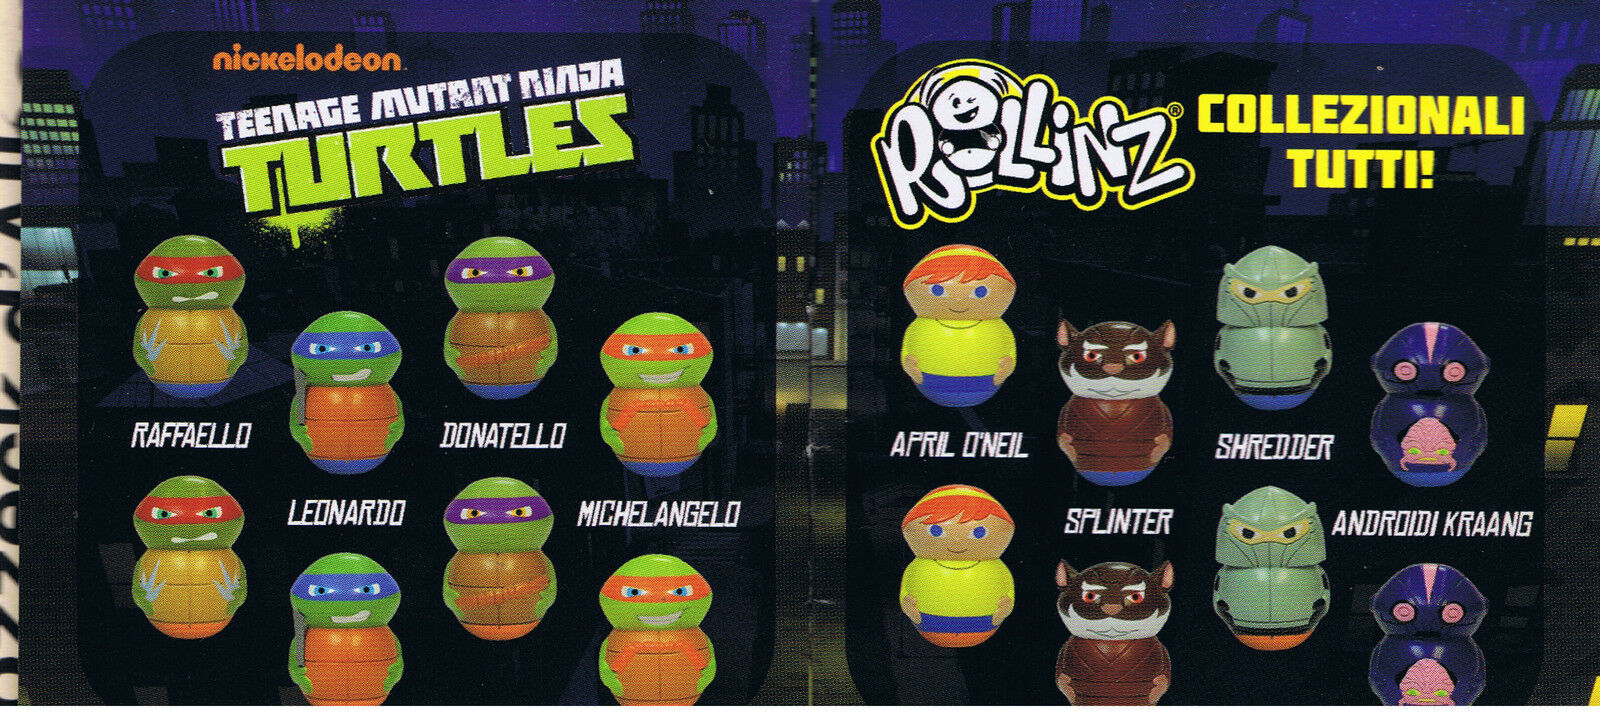 TEENAGE MUTANT NINJA TURTLES rollinz serie completa ED. GEDIS 2016